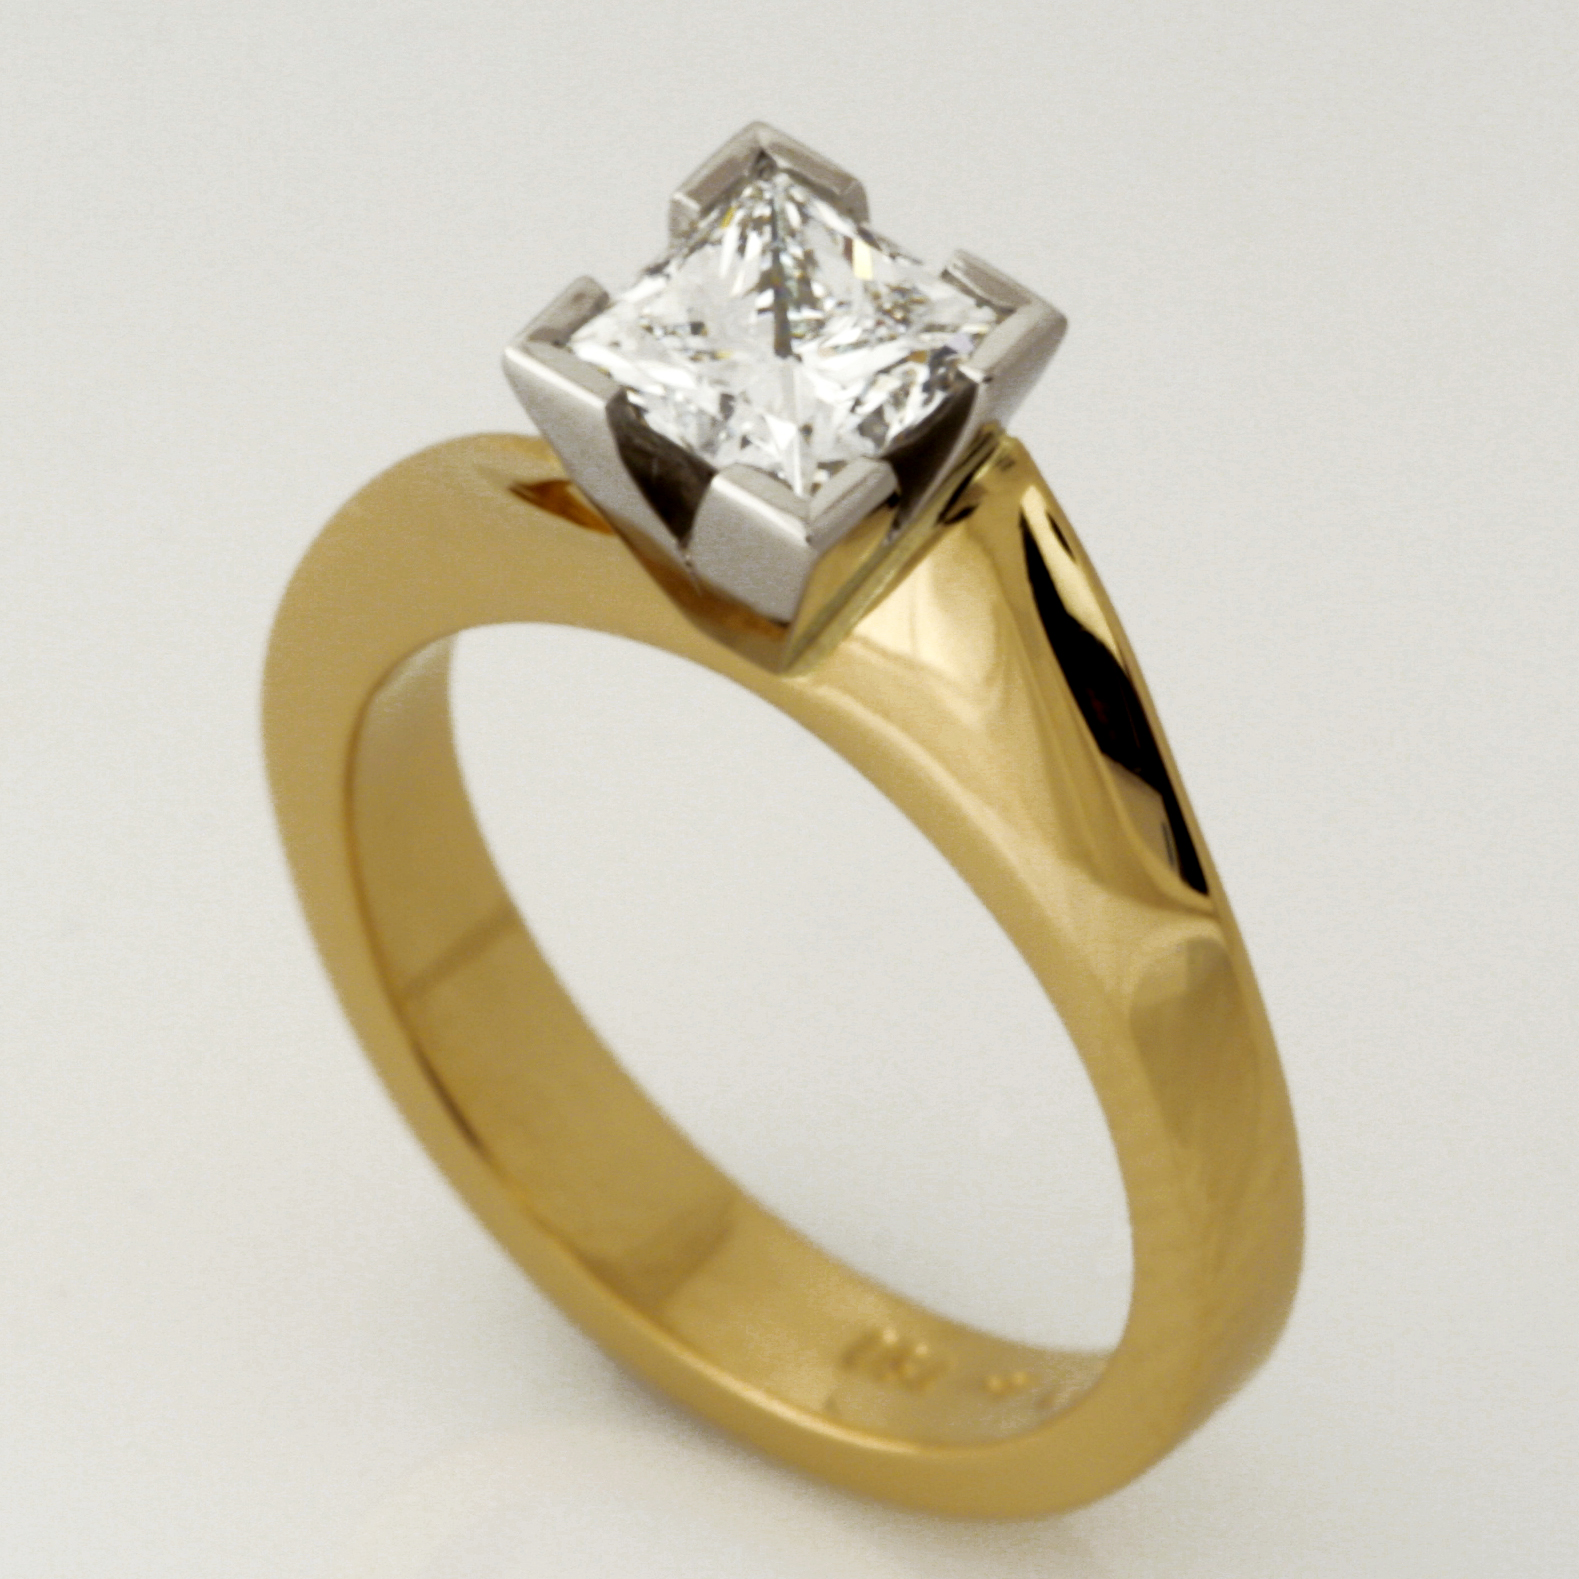 Handmade ladies 18ct yellow gold and platinum princess cut diamond engagment ring